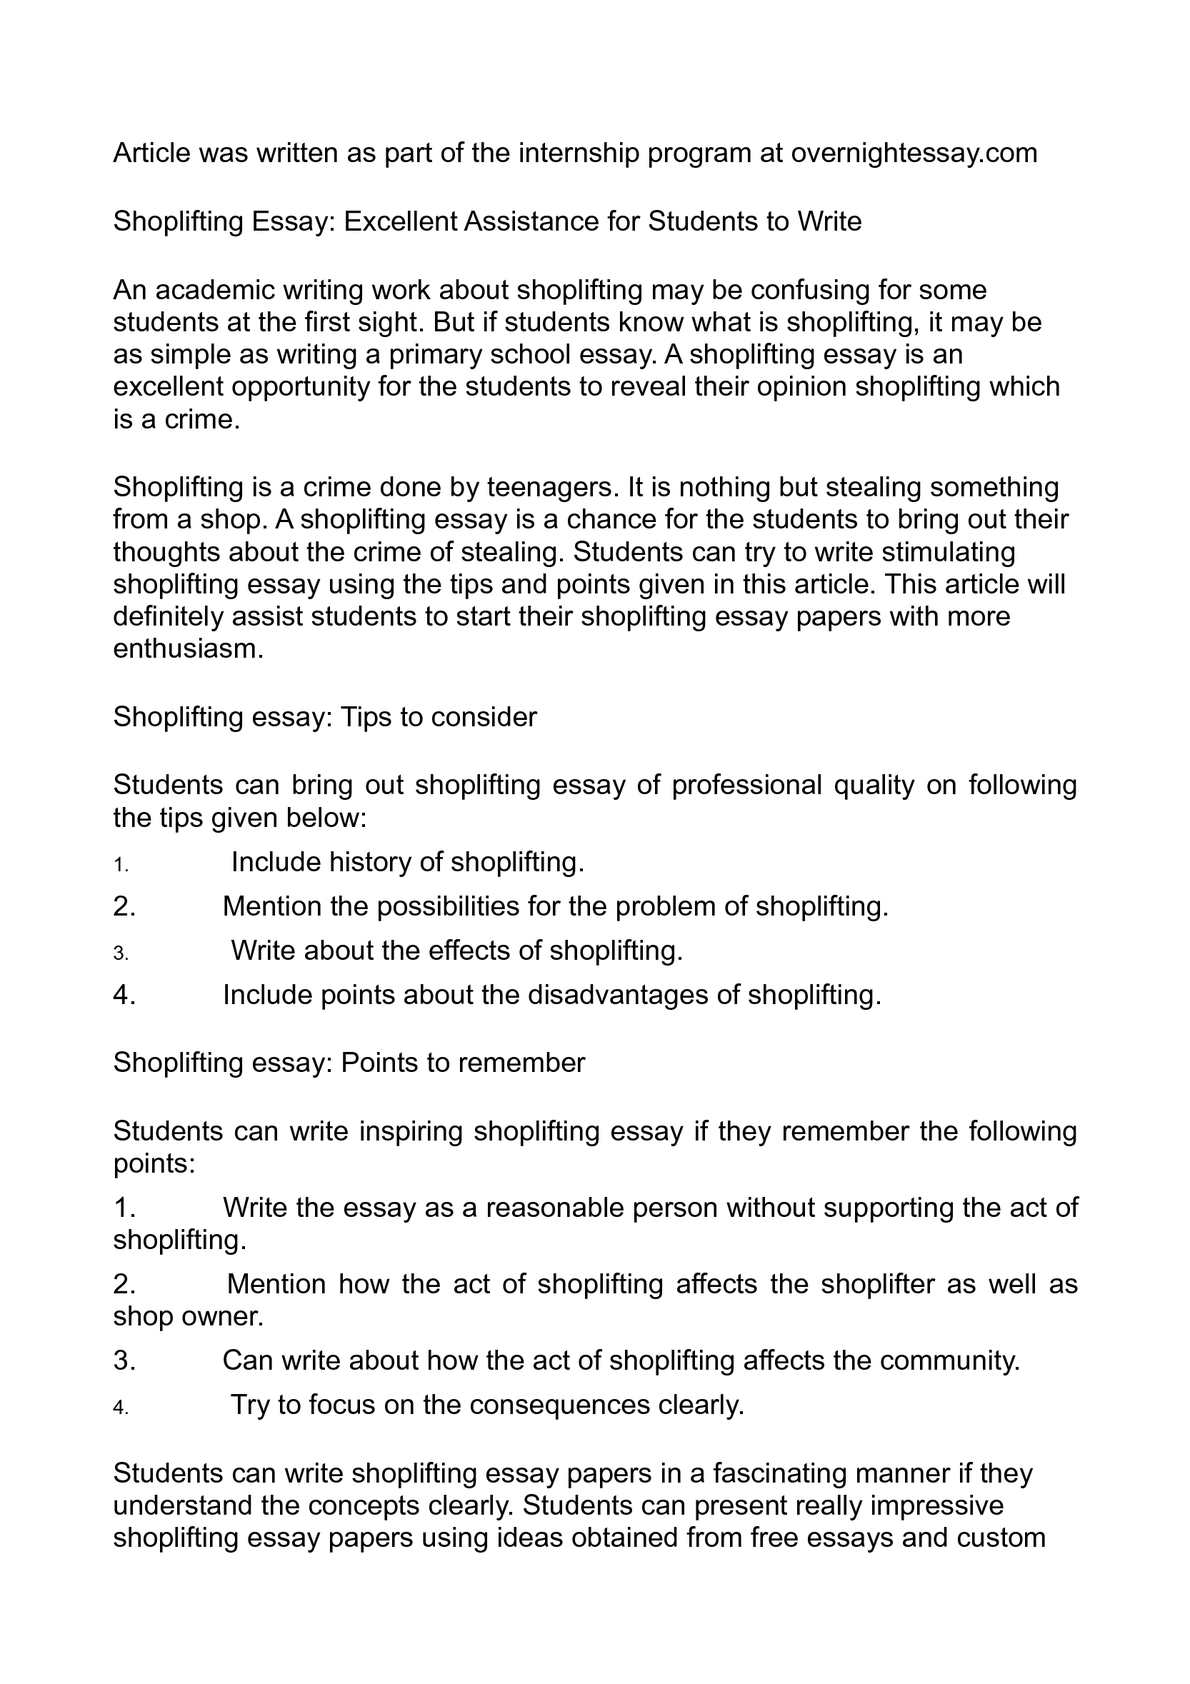 how does shoplifting affect consumers